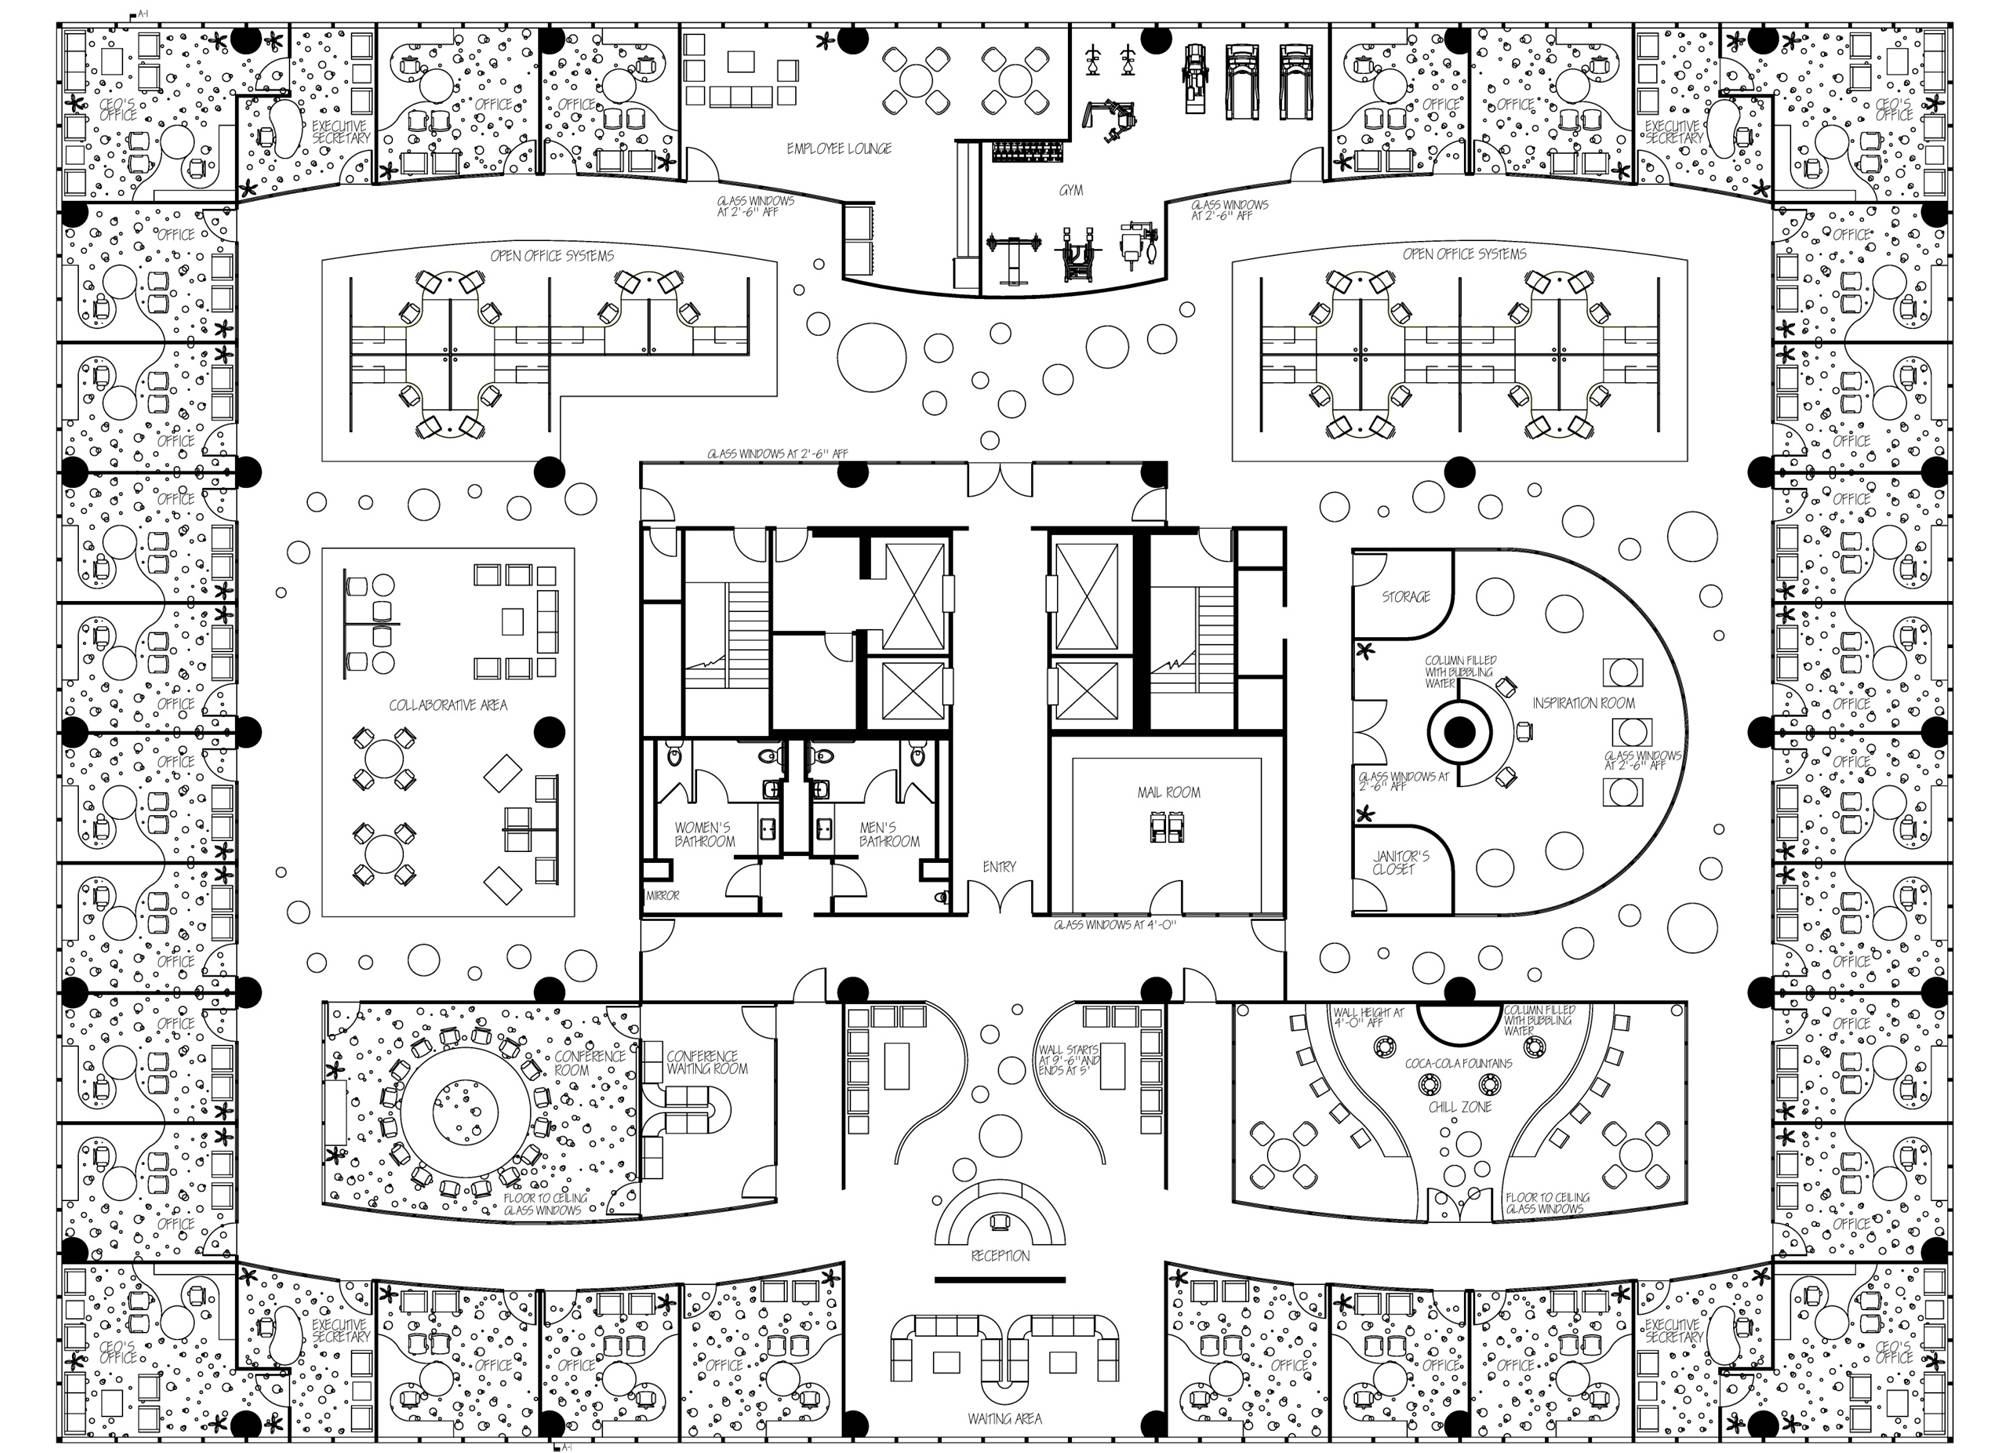 Drawn office floor plan design Office glubdubs By Home Contemporary